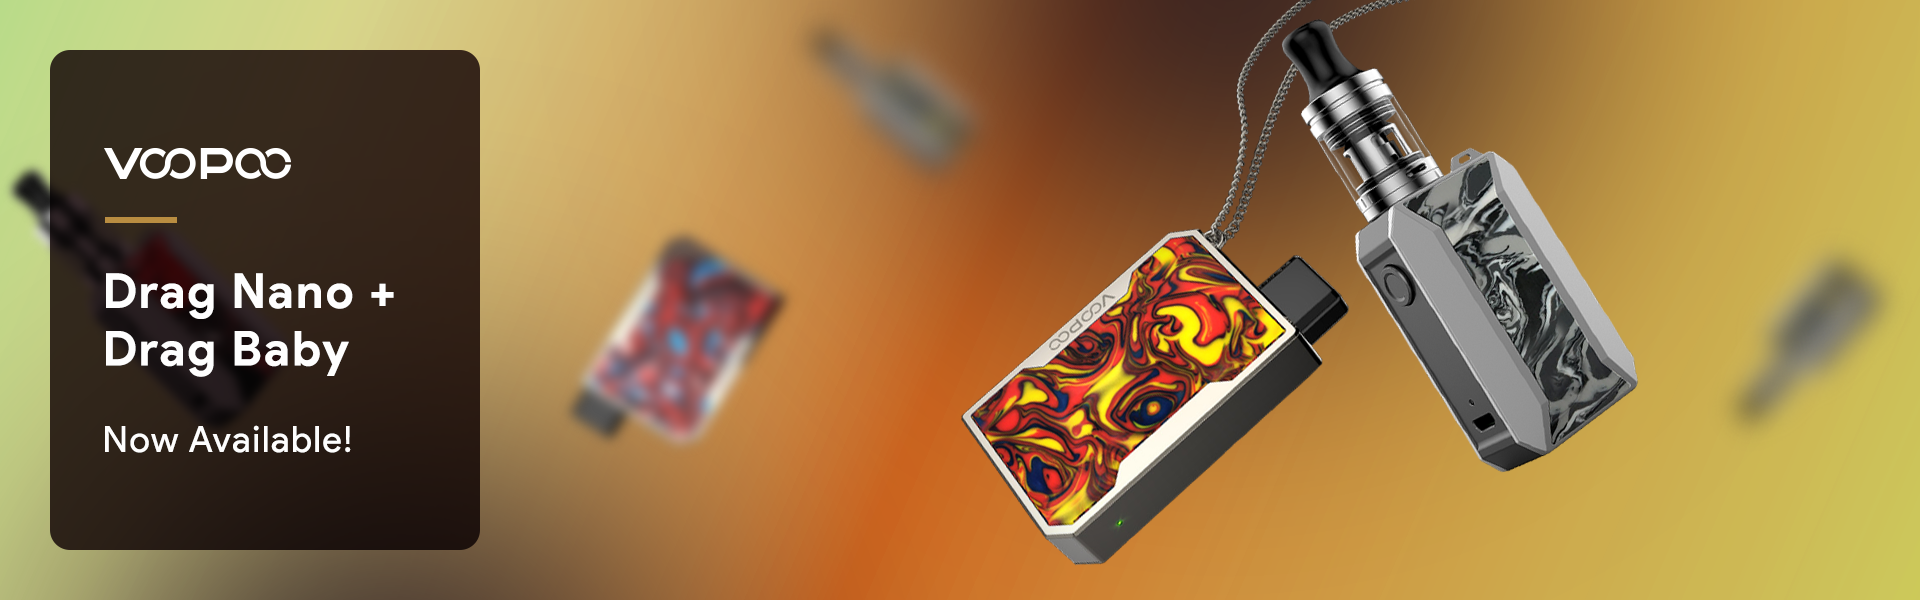 Voopoo Nano and Baby are now available to buy wholesale at Pacific Smoke